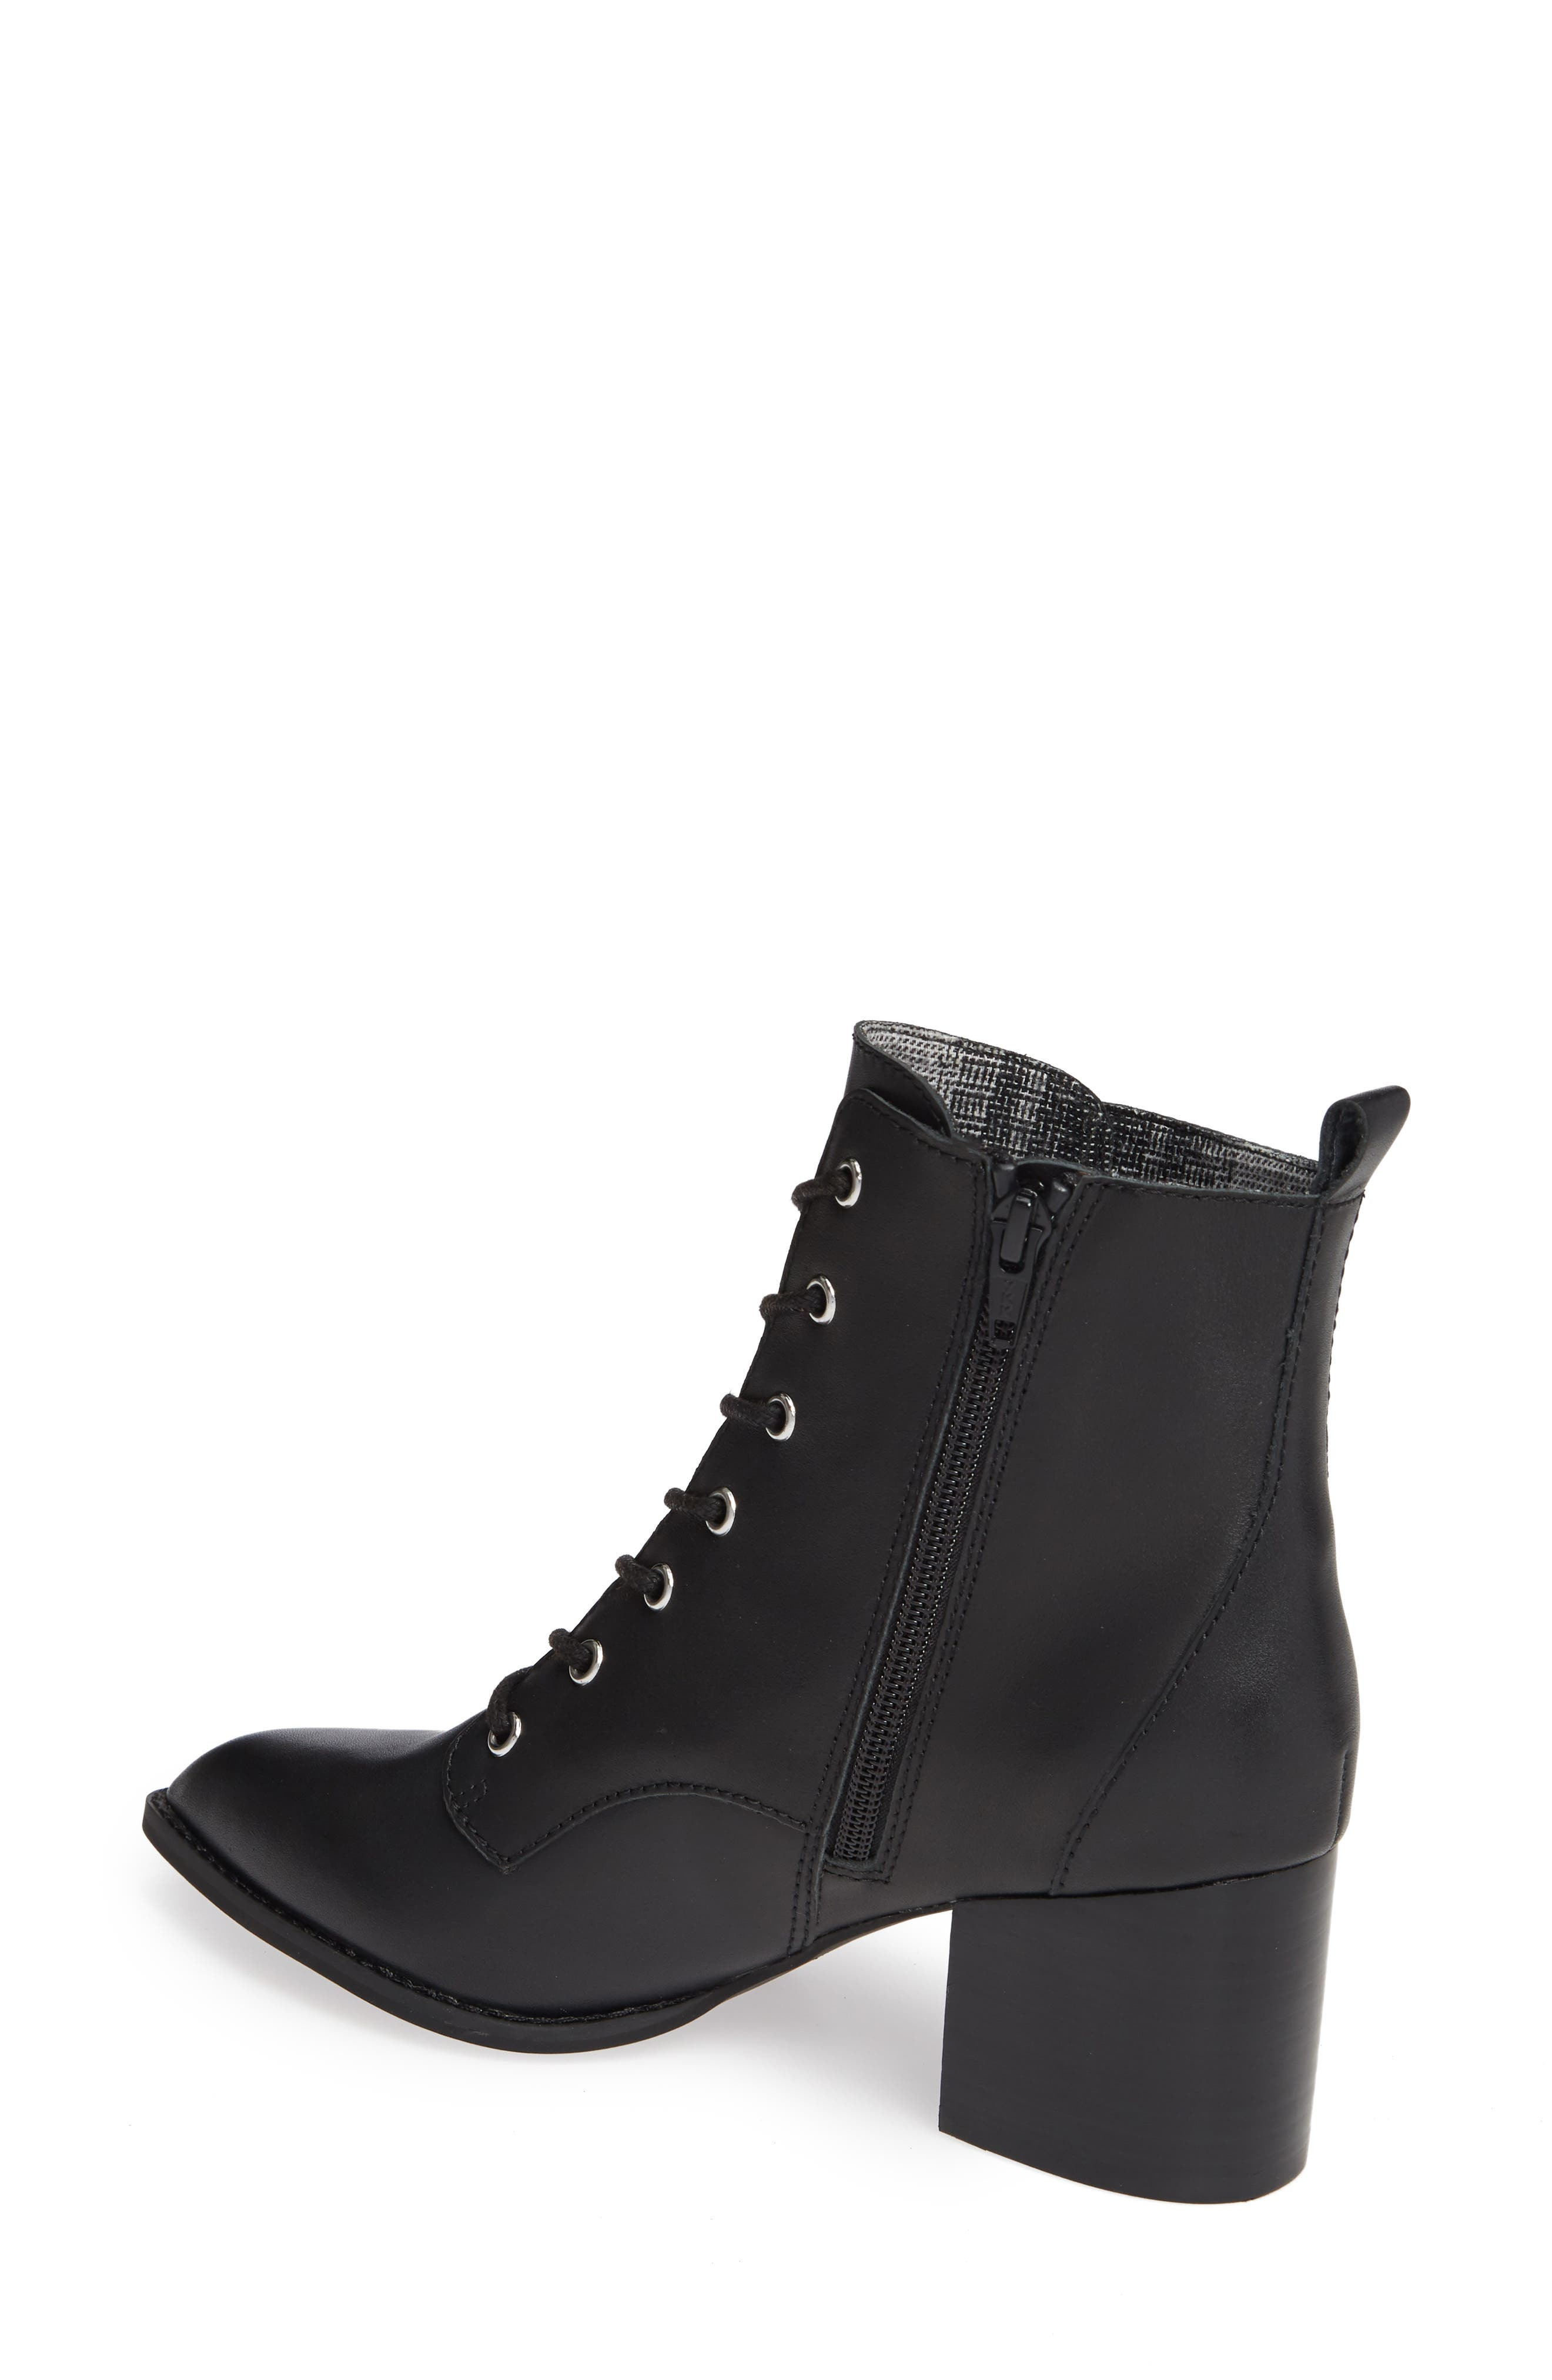 Trench Bootie,                             Alternate thumbnail 2, color,                             BLACK LEATHER